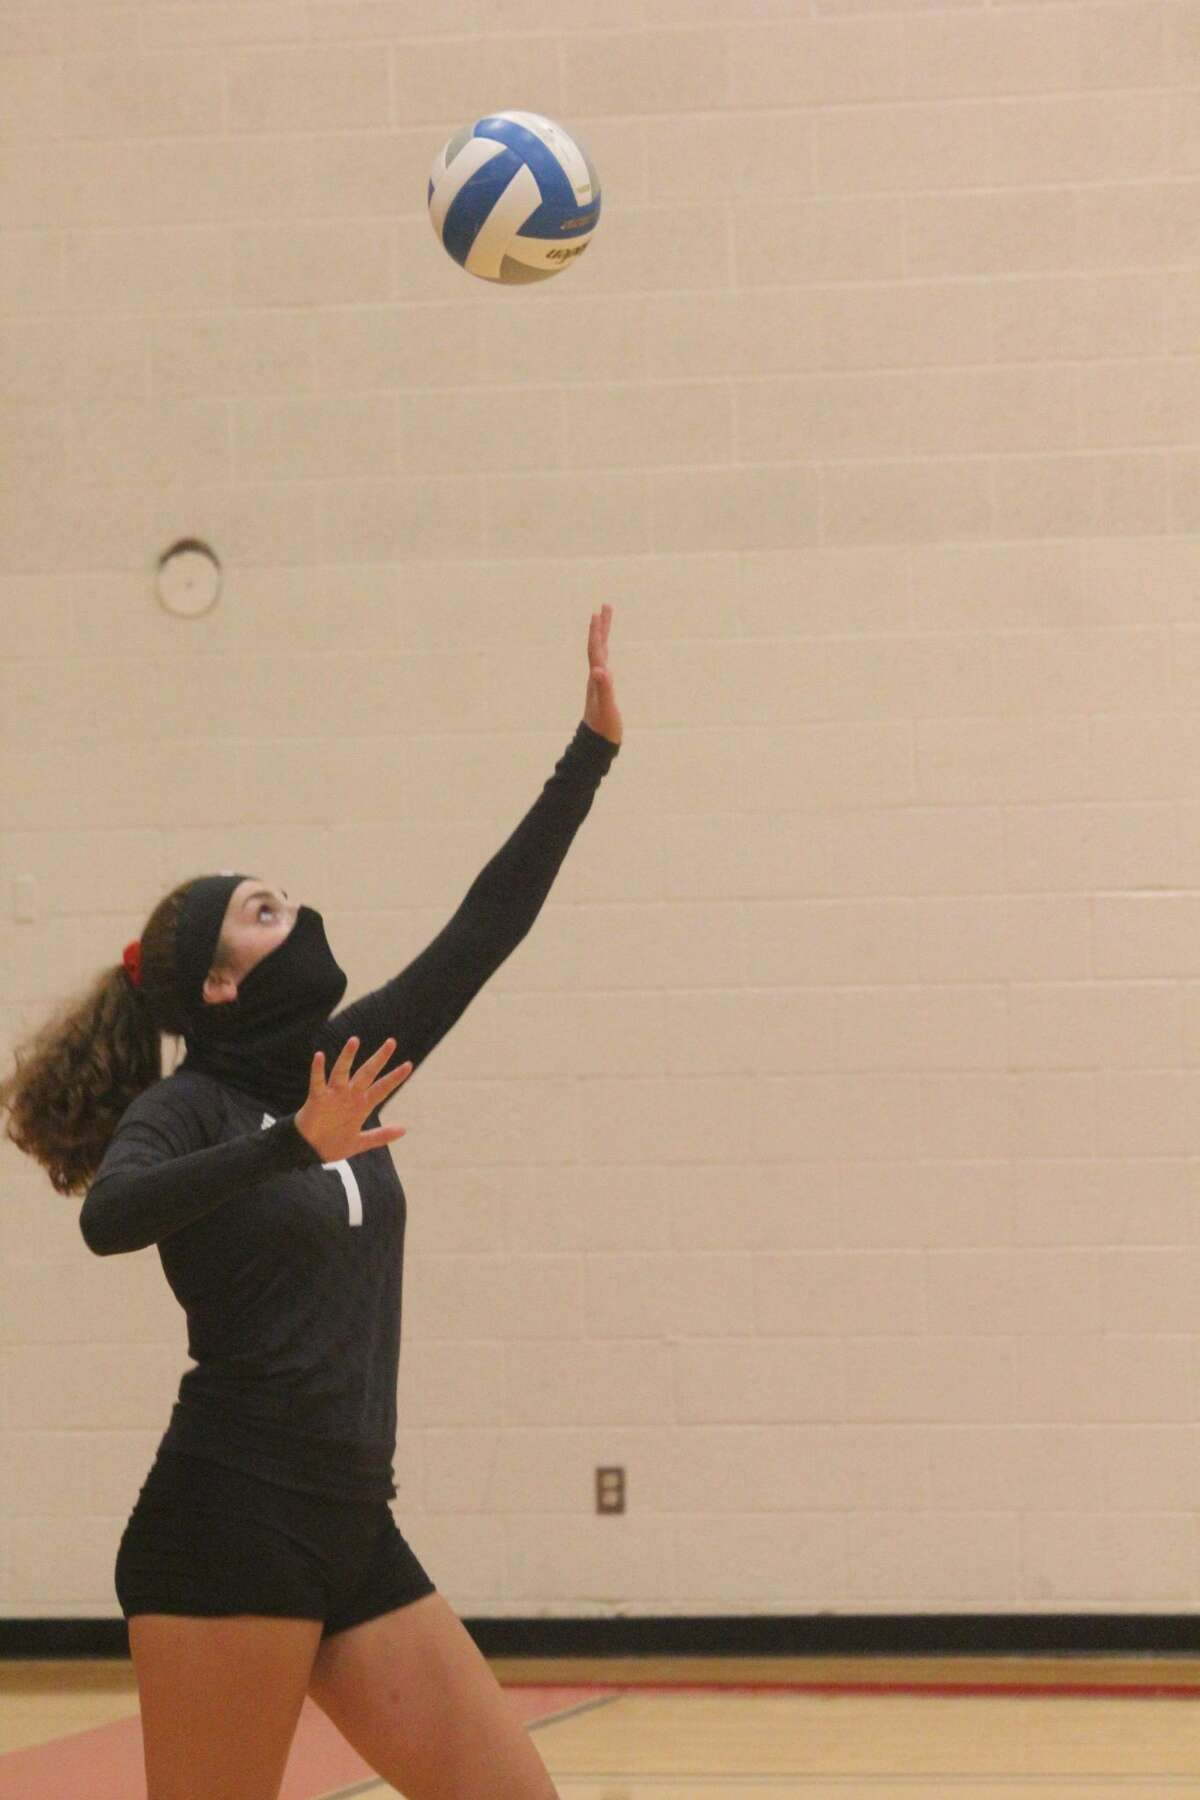 It was a tough five-set match in the Central State Activities Association Gold Division on Tuesday with Chippewa Hills winning 3-2.